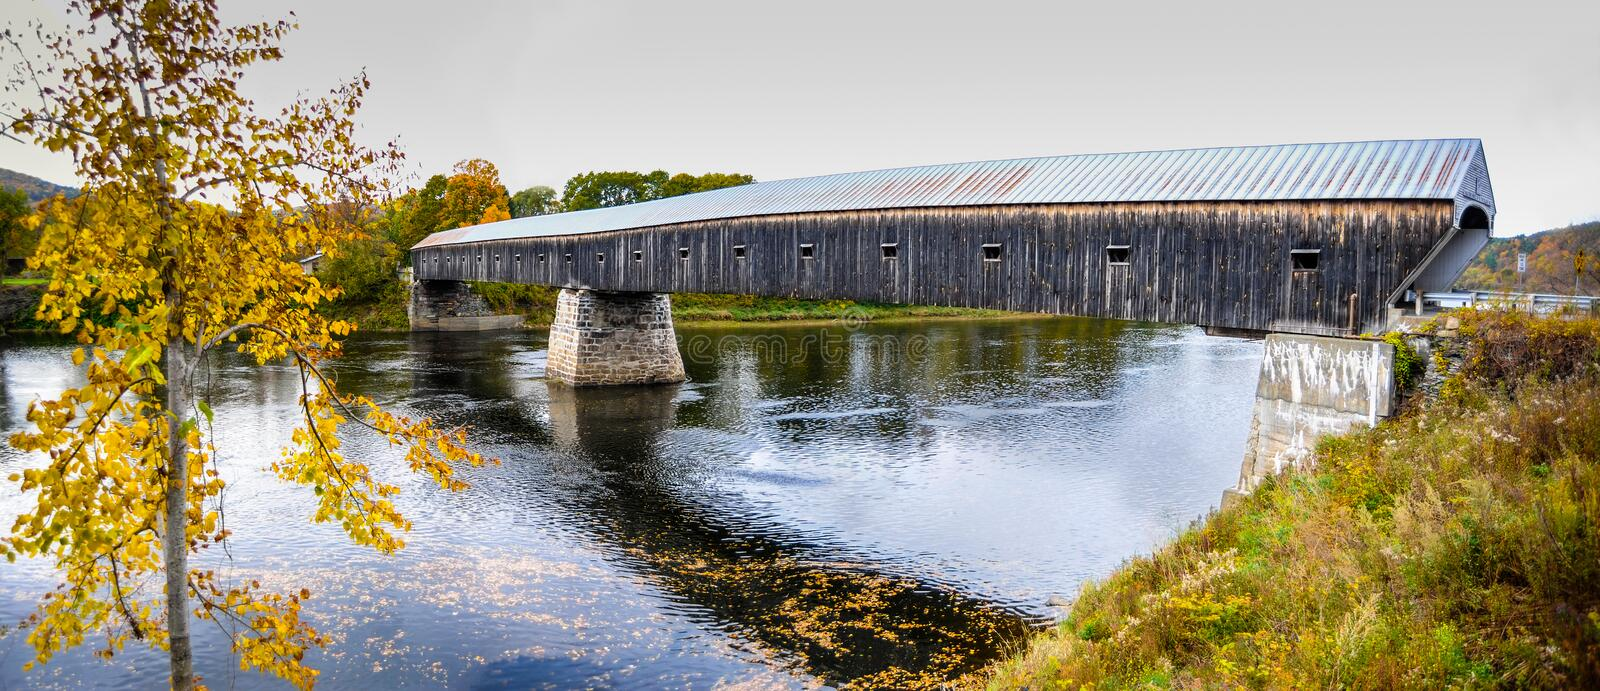 Corniska Windsor Covered Bridge arkivfoton